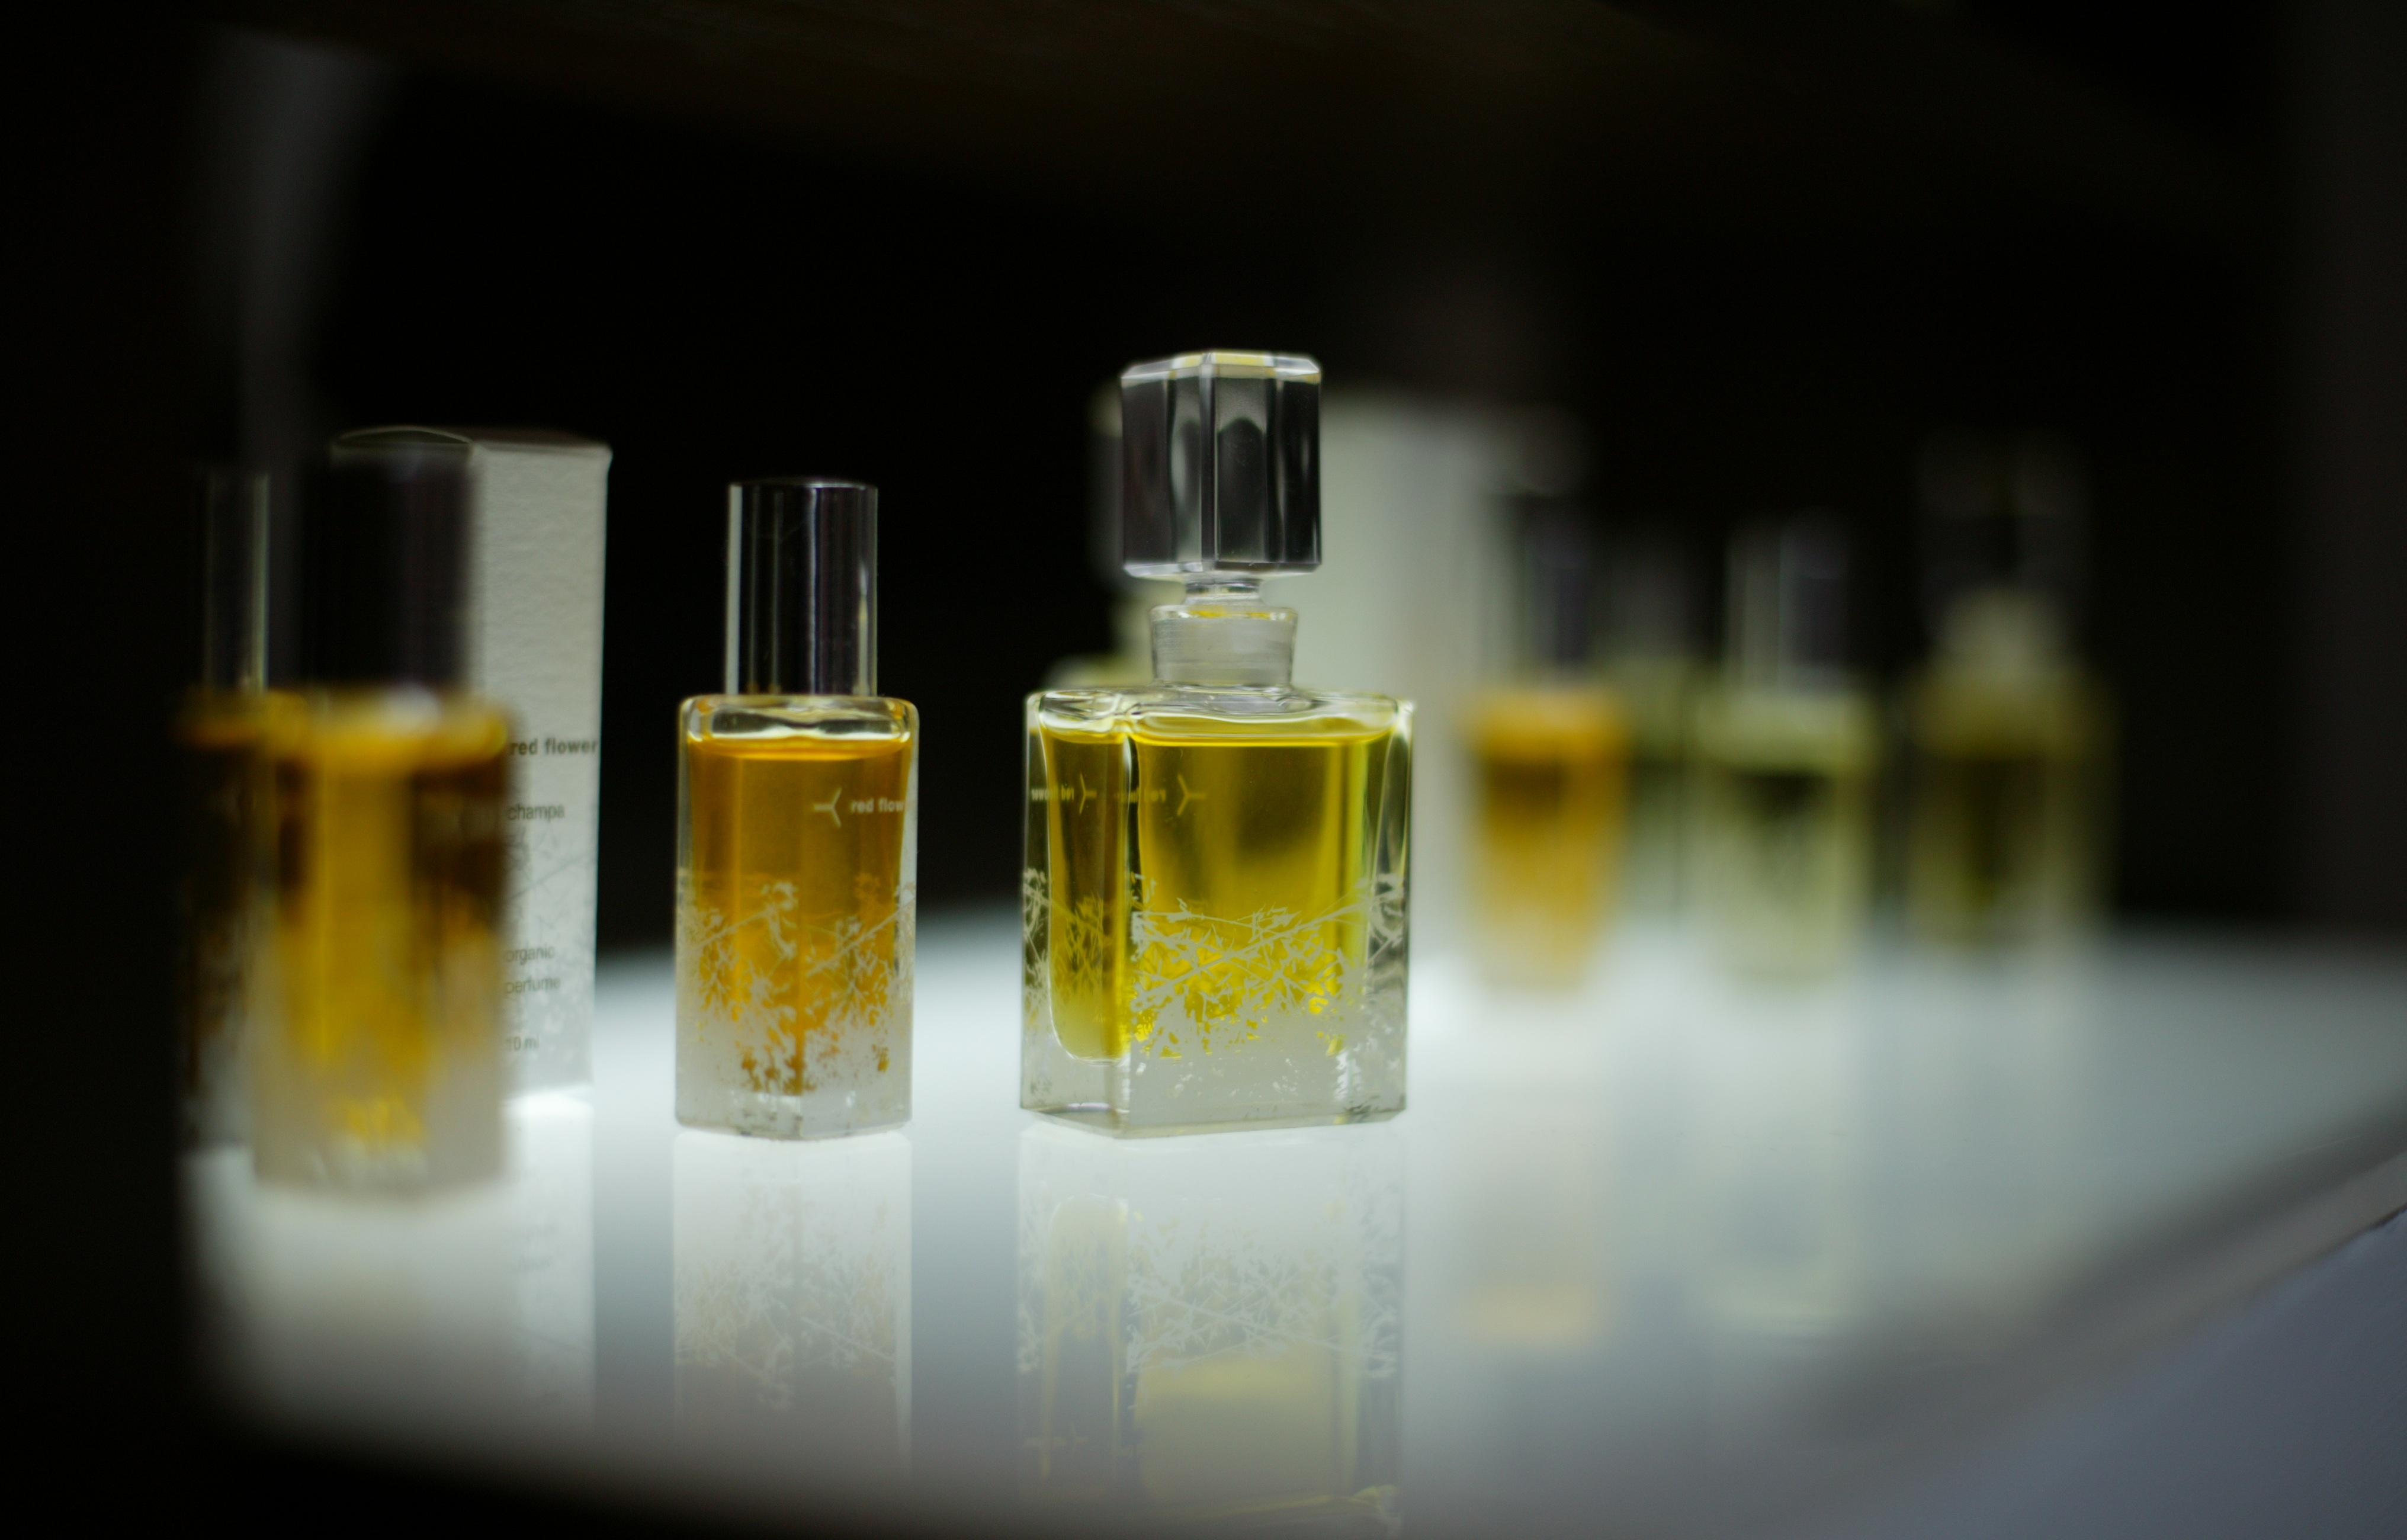 Perfume Oil Market - Global Industry Analysis, Size, Share, Growth